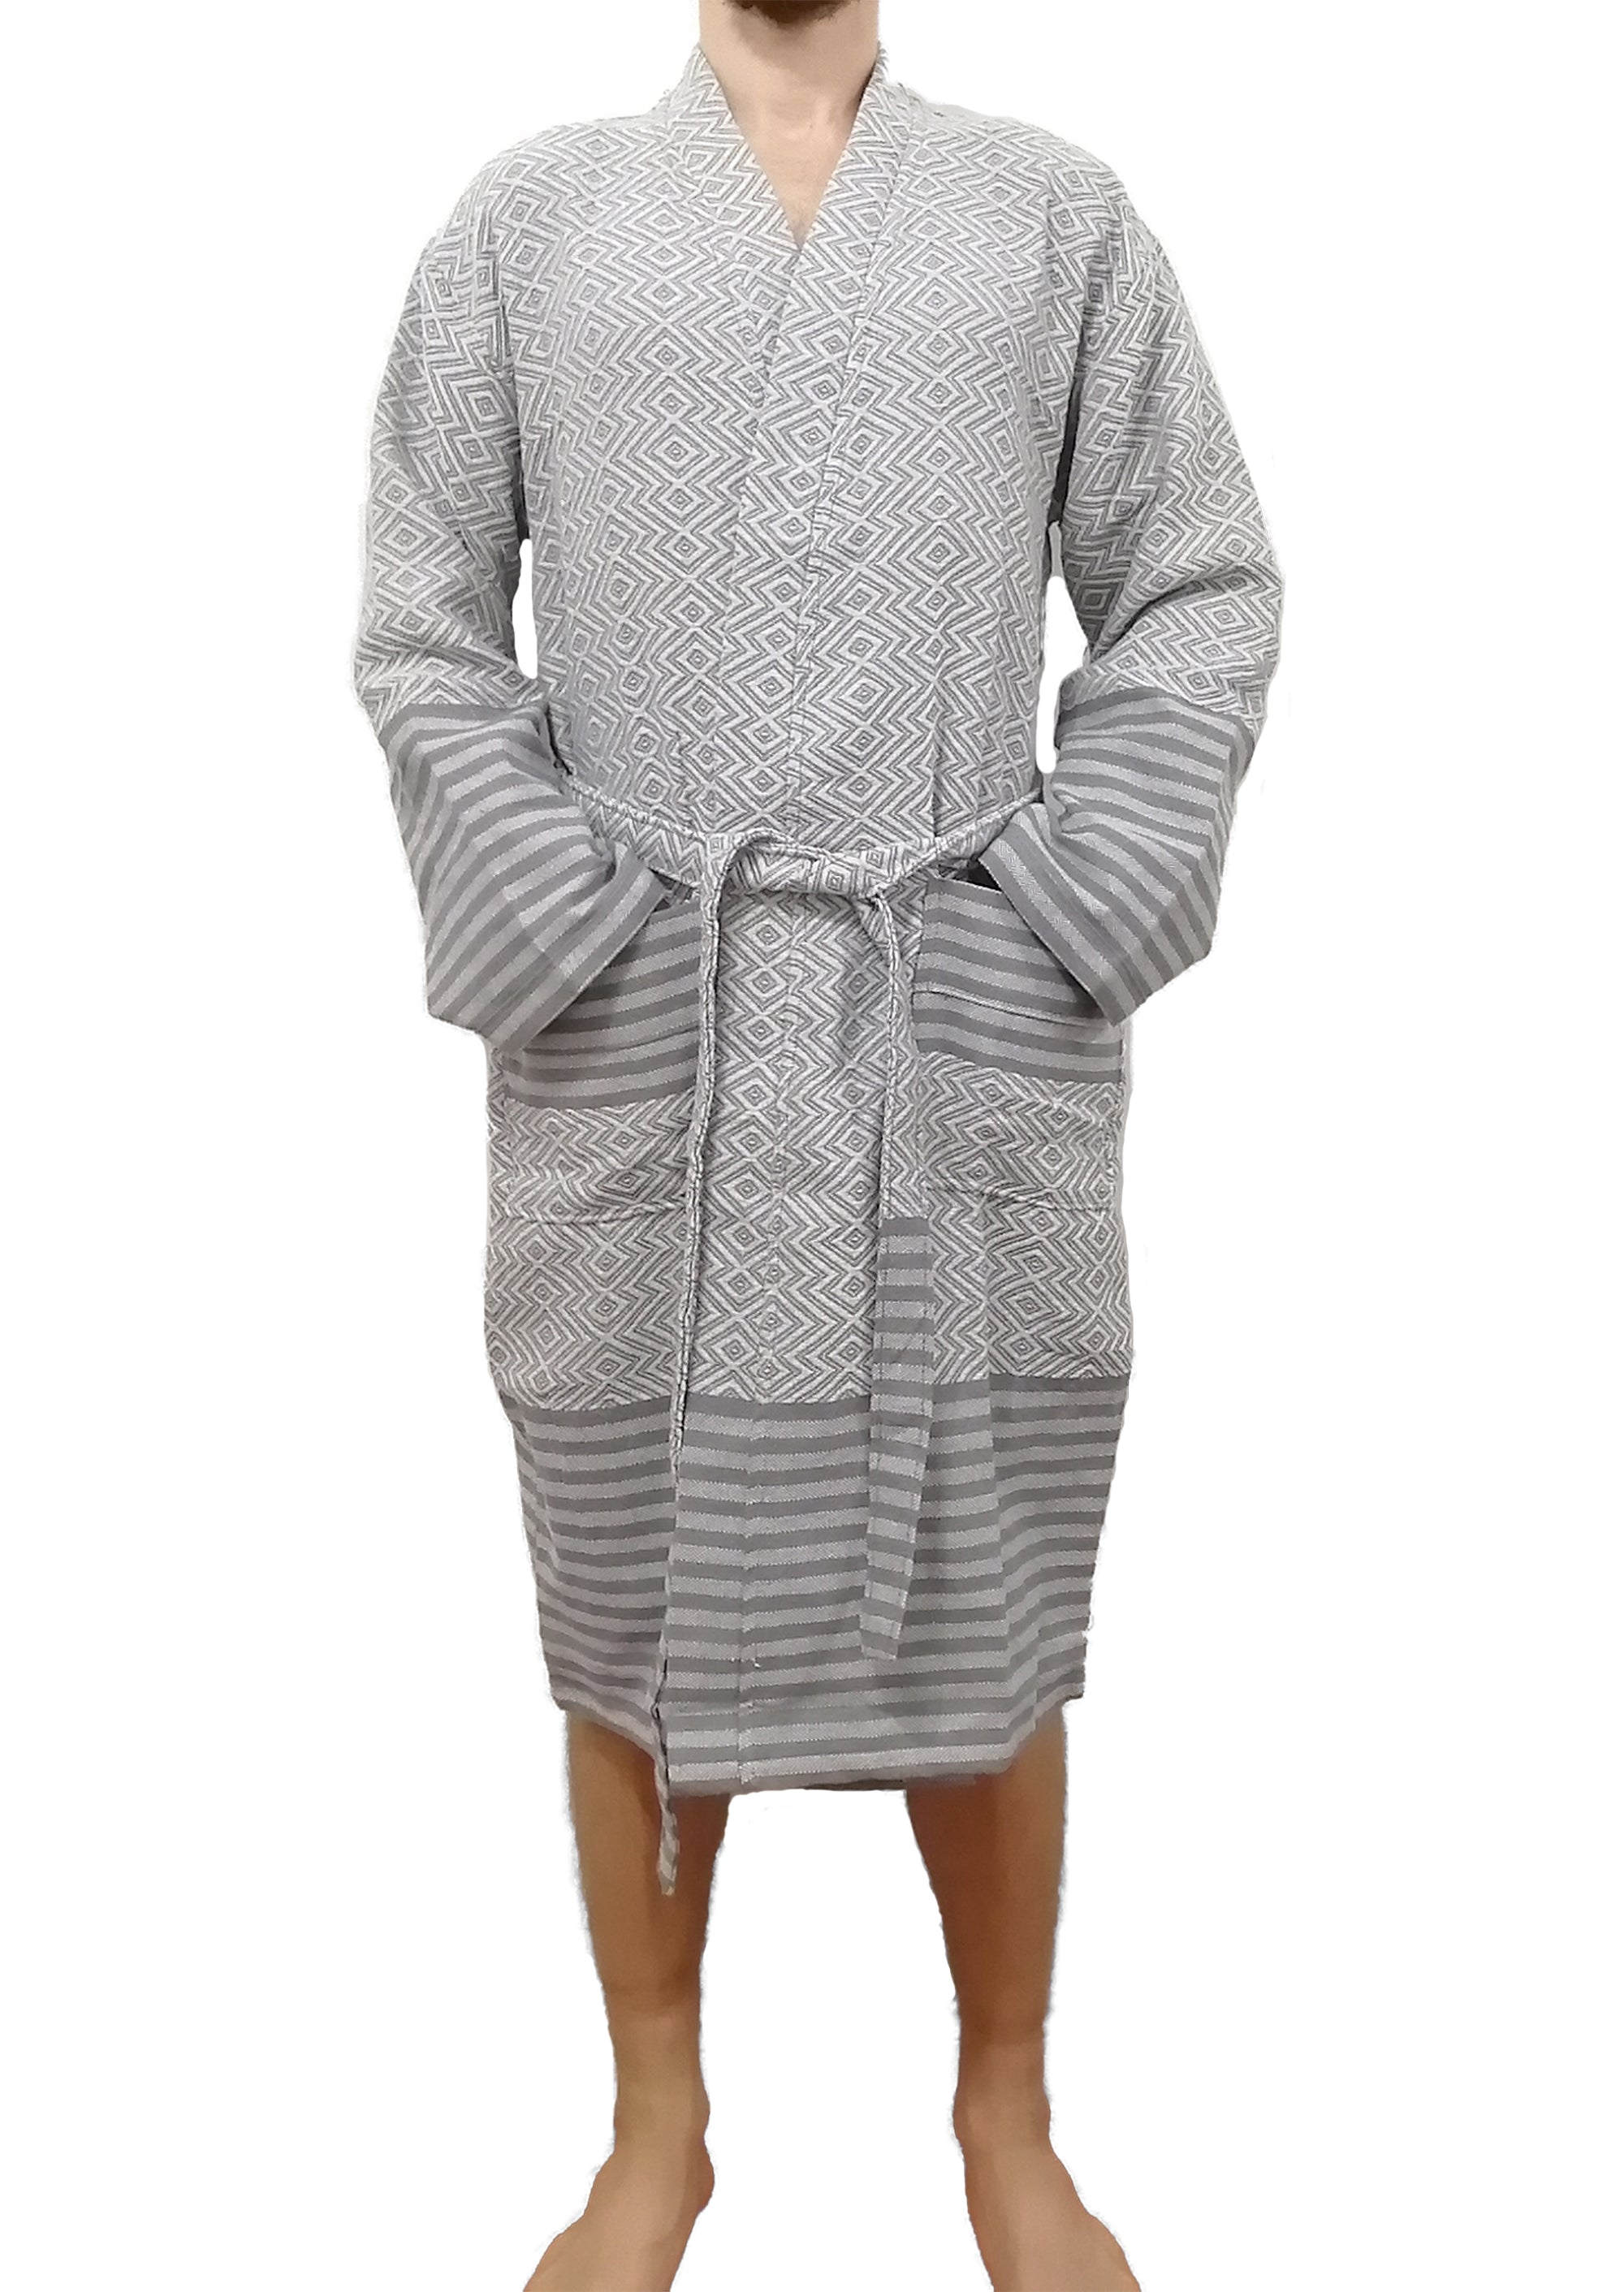 Turkish bathrobe sultan silver made with the finest quality Turkish cotton, super soft, lightweight Turkish towel robes, Perfect for drying off and staying warm, superior absorbency.it is with arrow pattern.